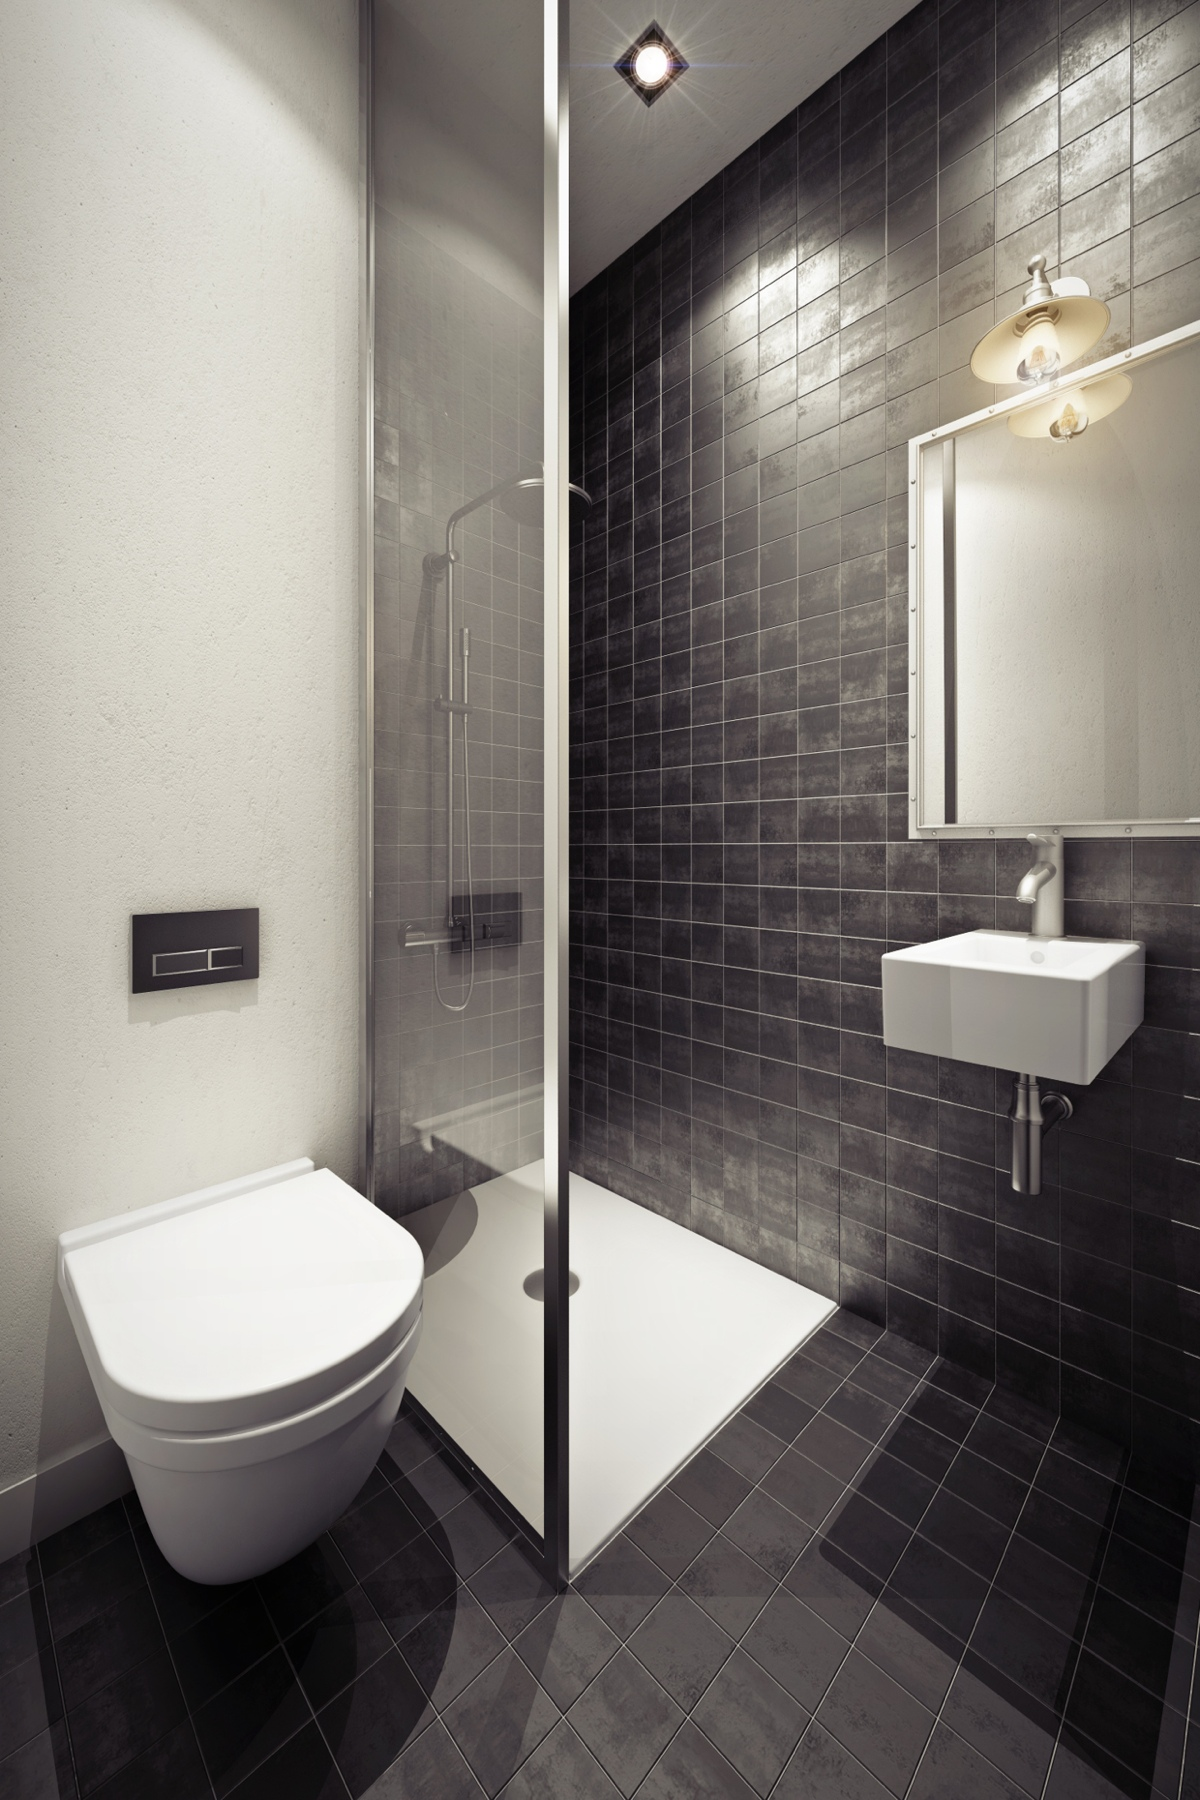 Urban bathroom design style